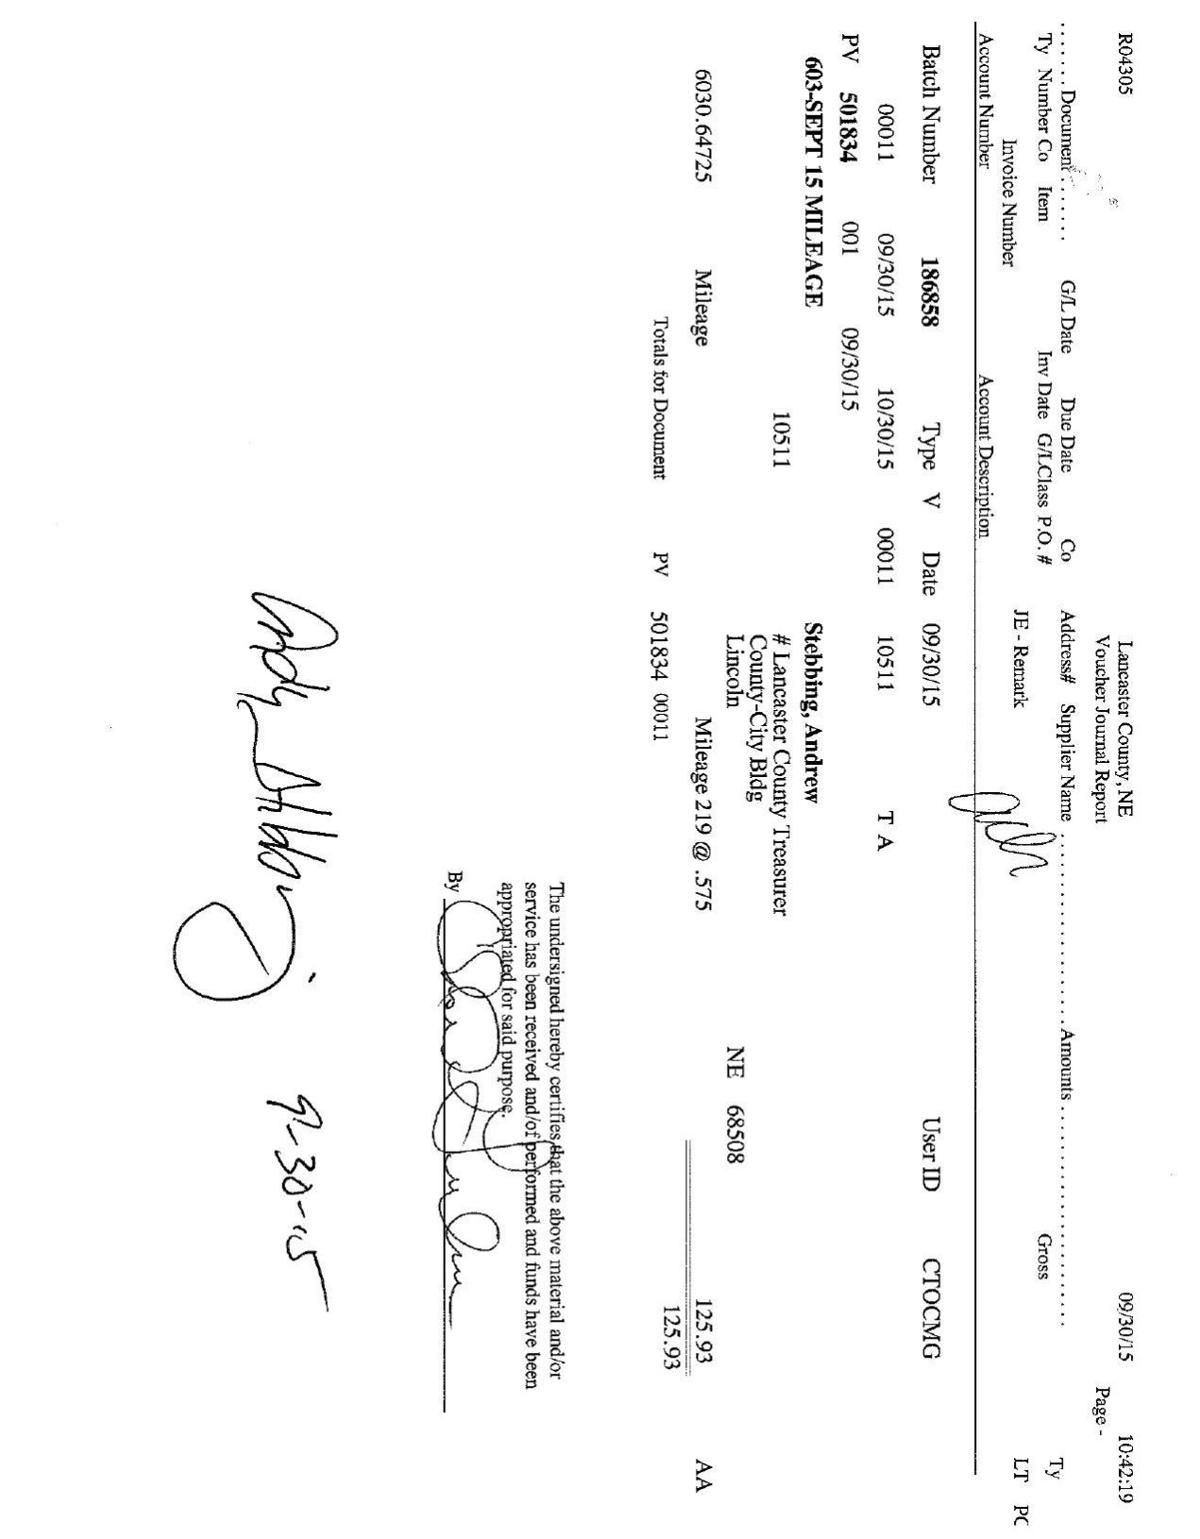 Andy Stebbing's reimbursement claims